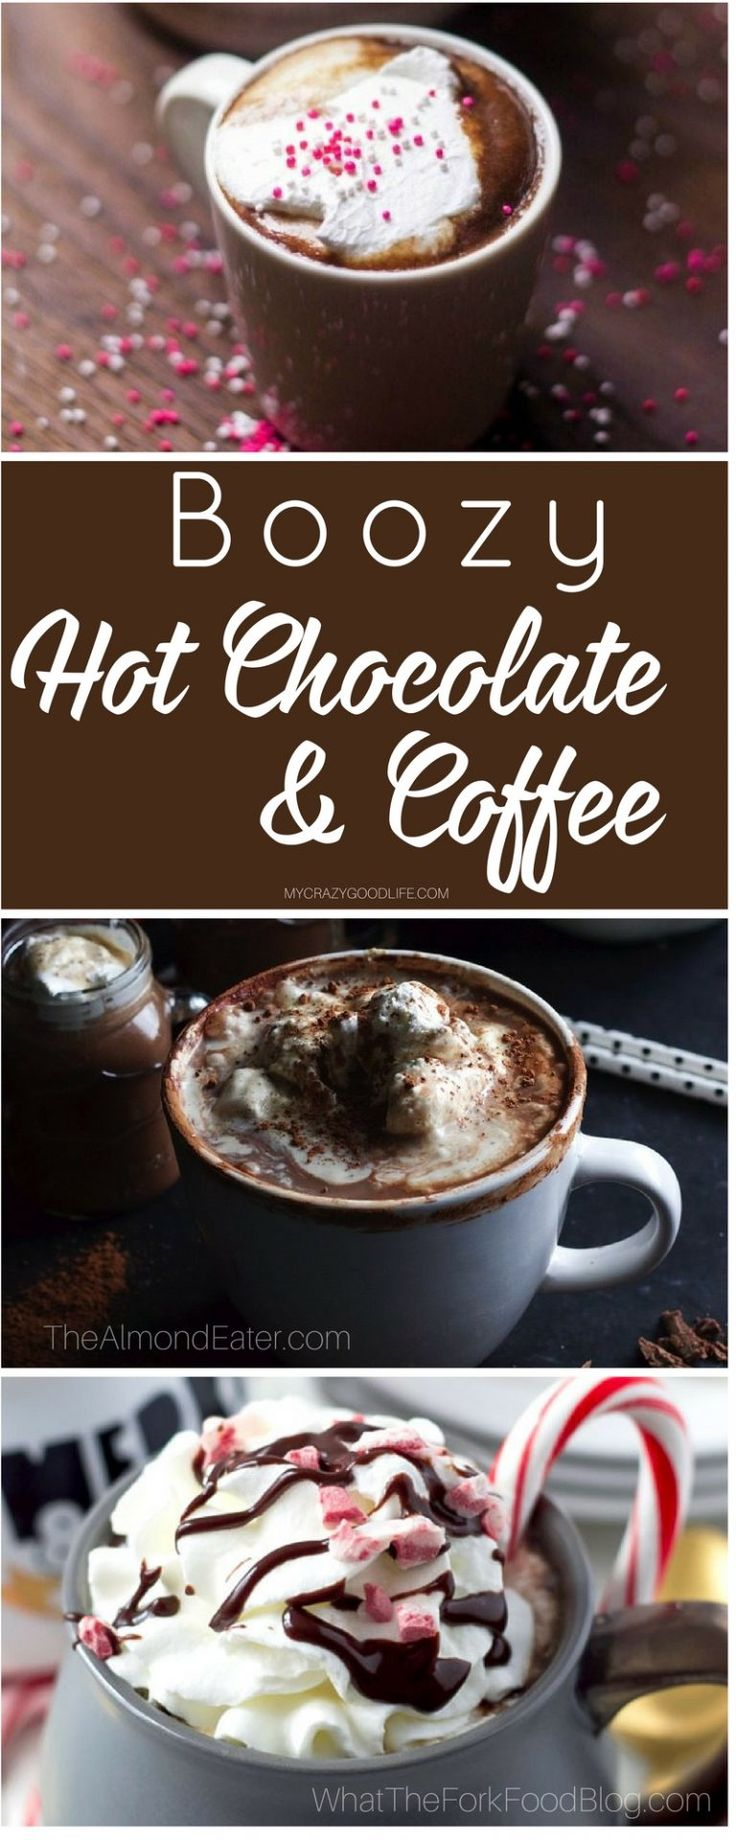 What Is A Good Liquor To Mix With Hot Chocolate